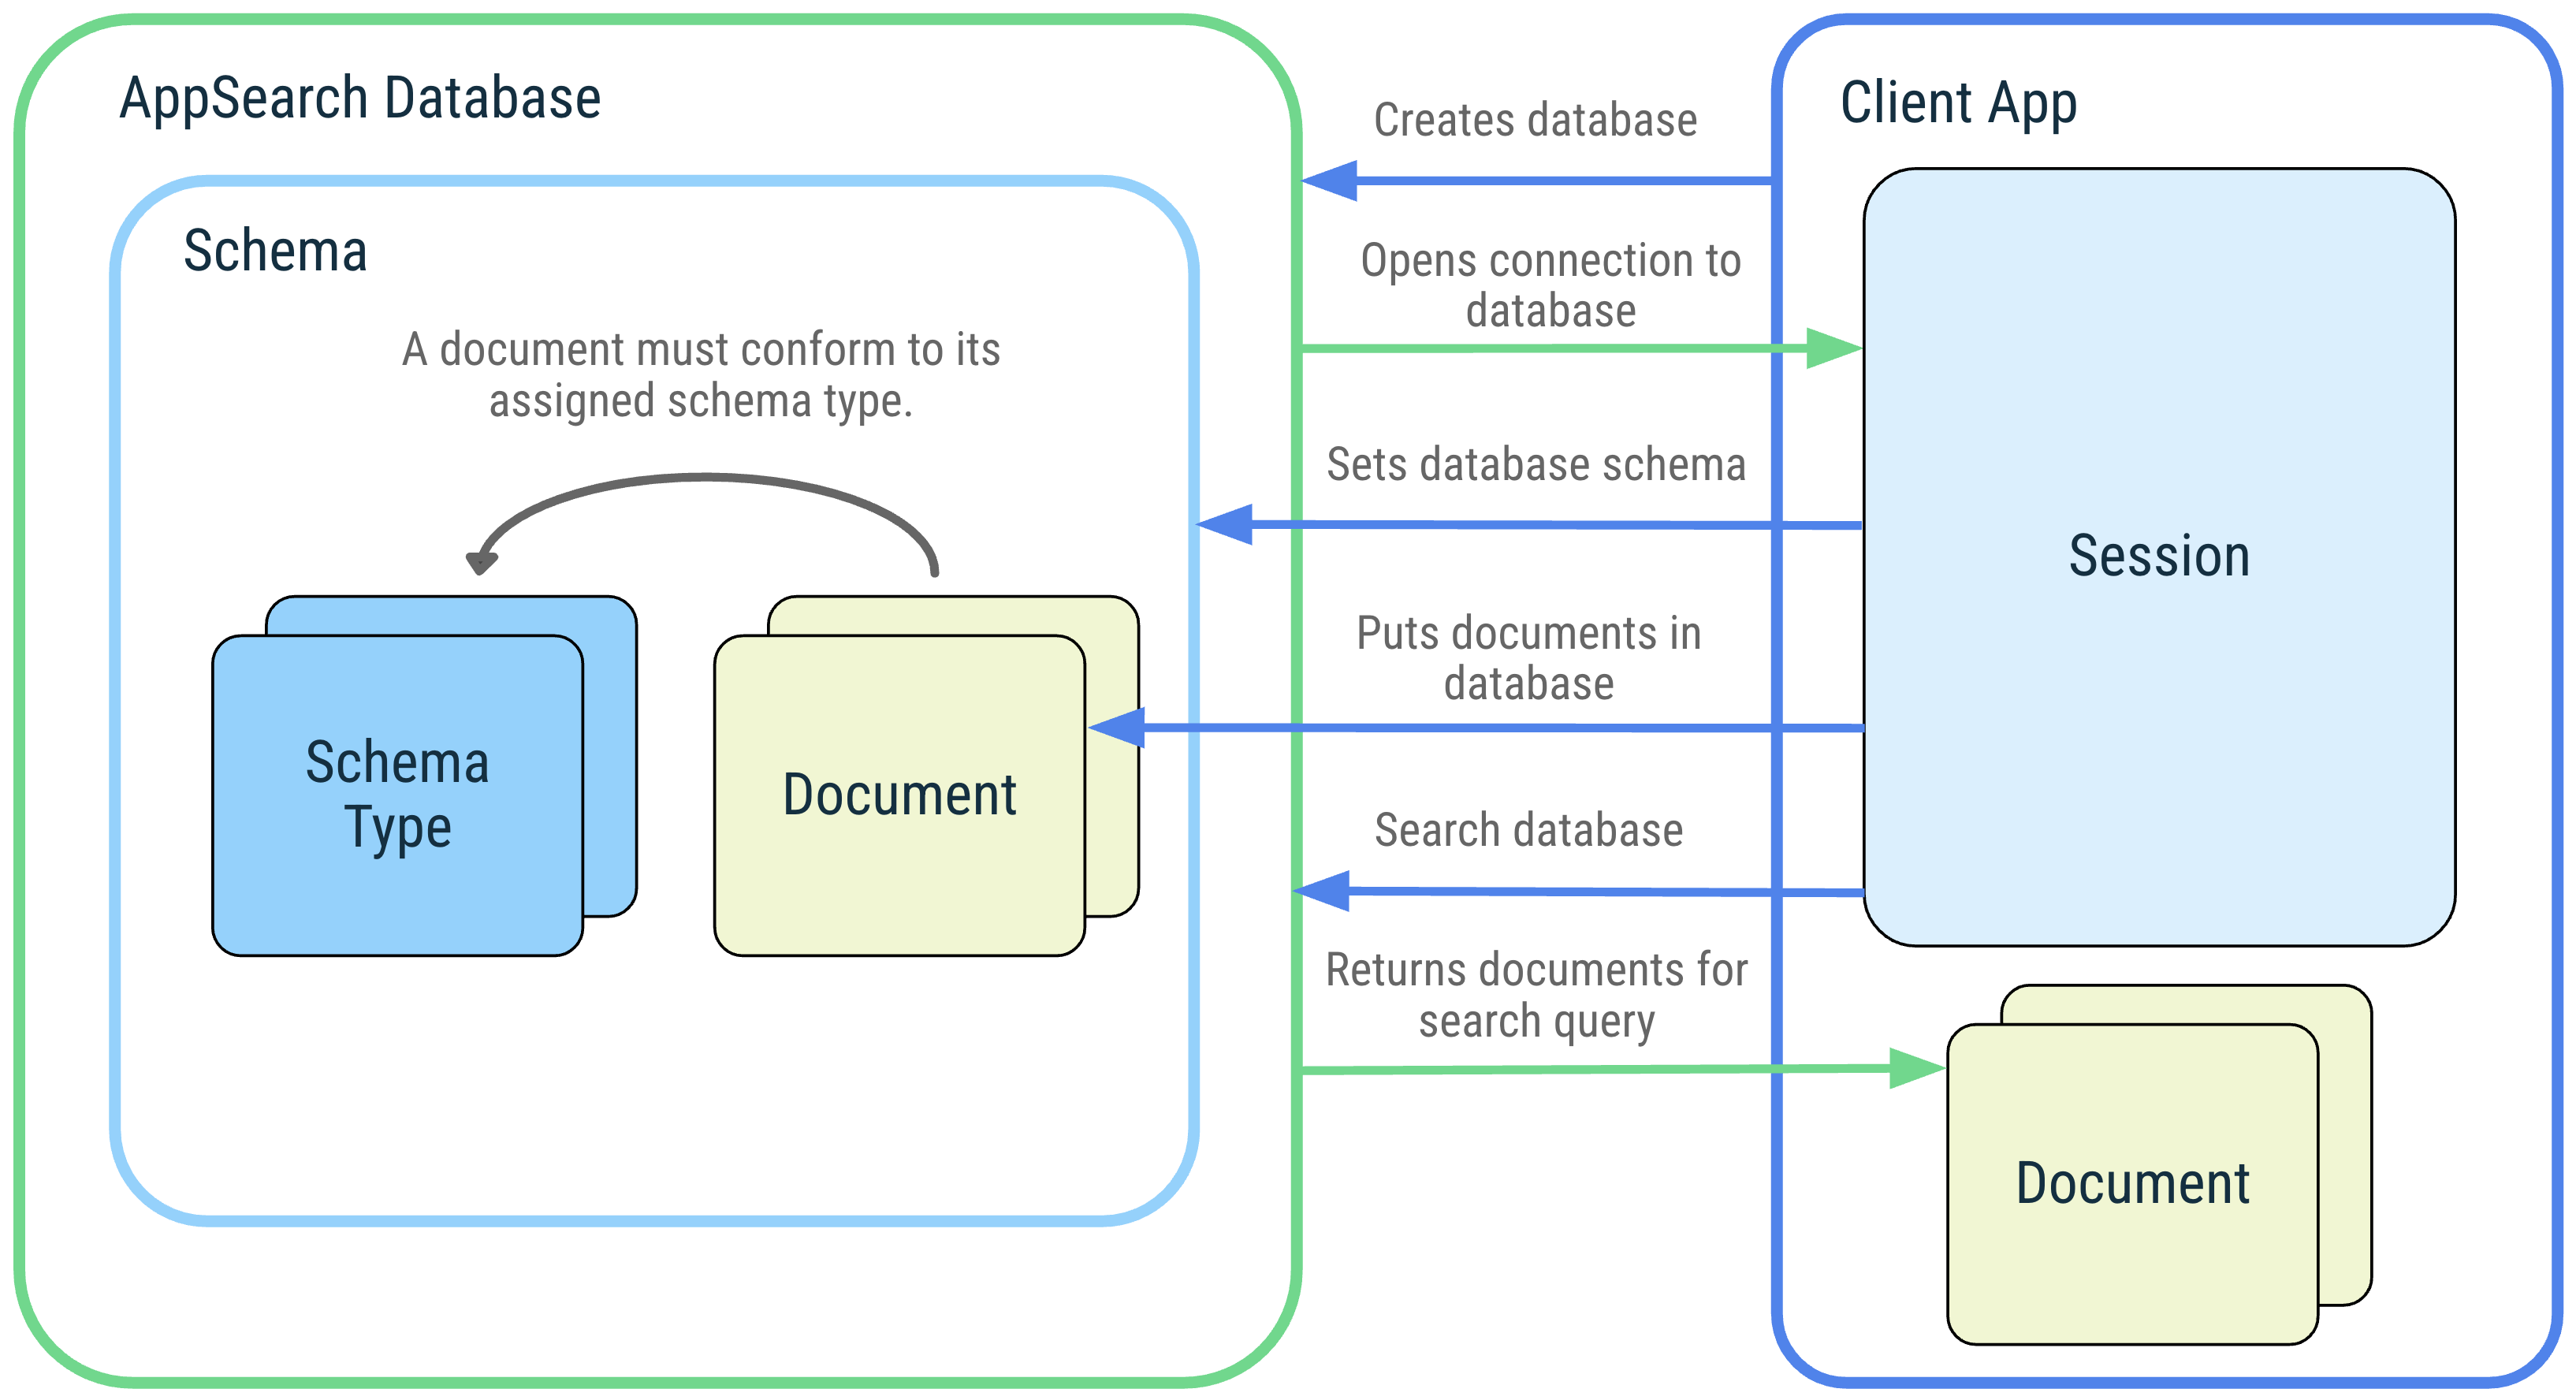 Diagram outline of a client application and its interactions with the following AppSearch concepts: AppSearch database, schema, schema types, documents, session, and search.